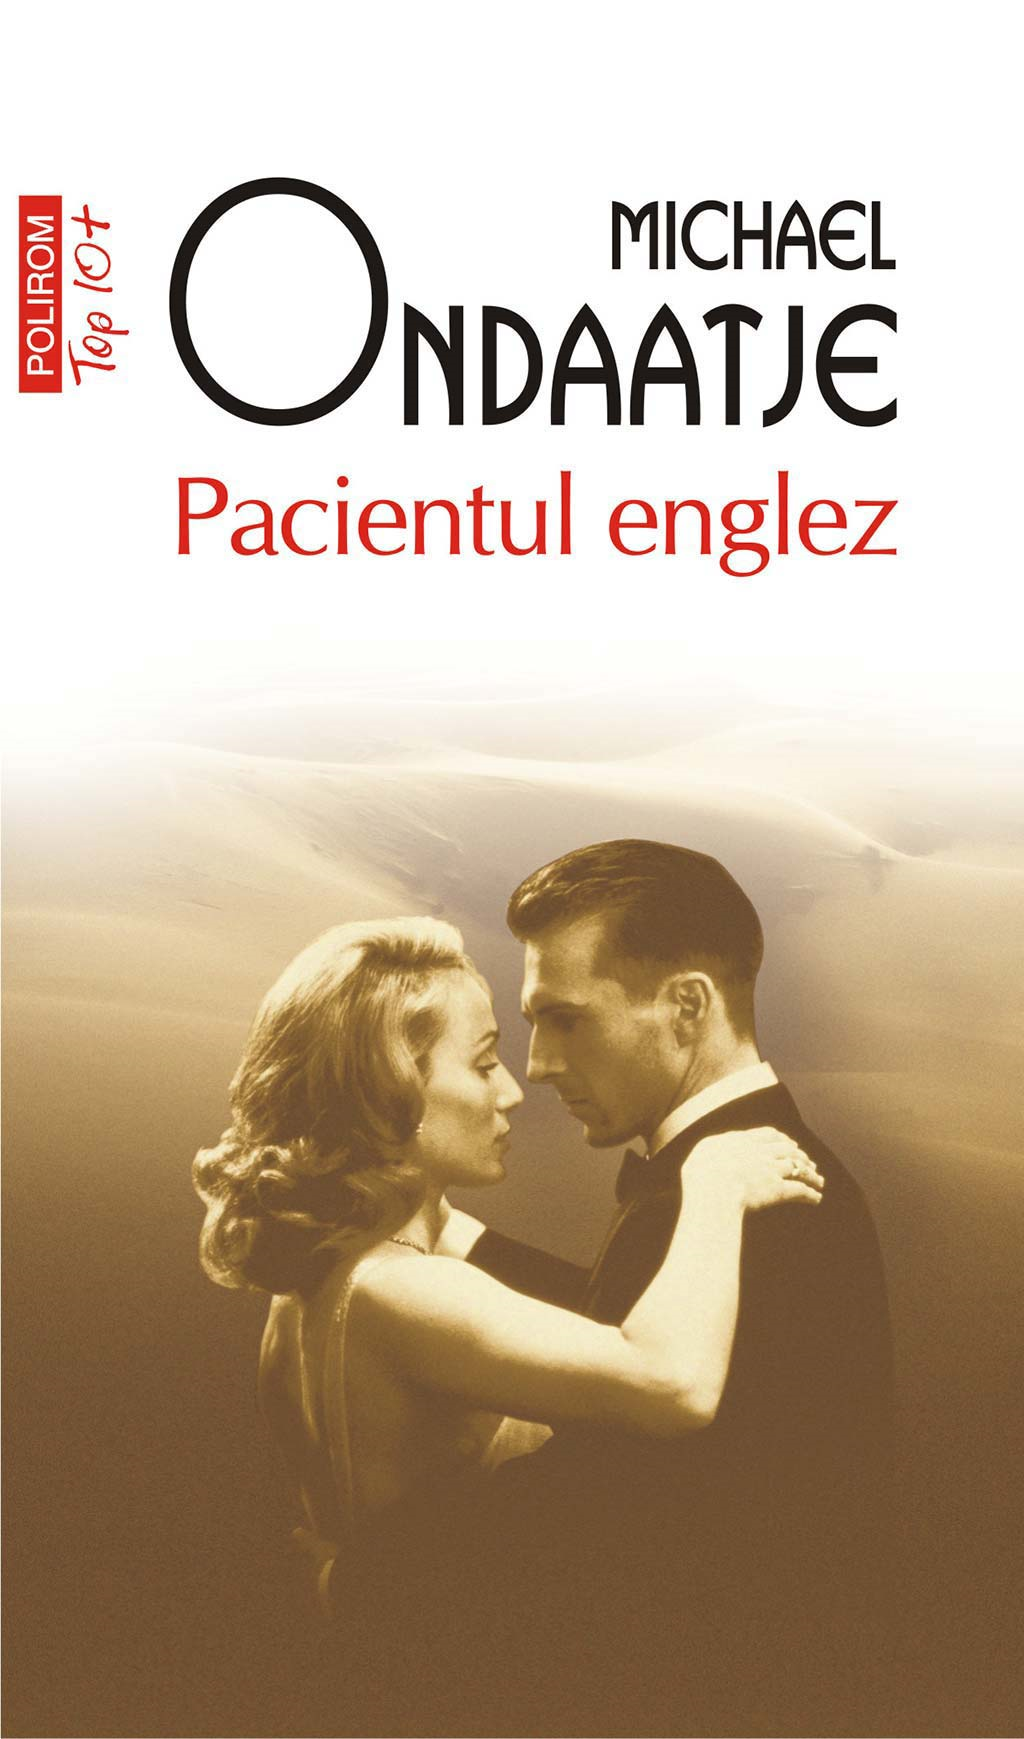 Pacientul englez (Romanian edition)